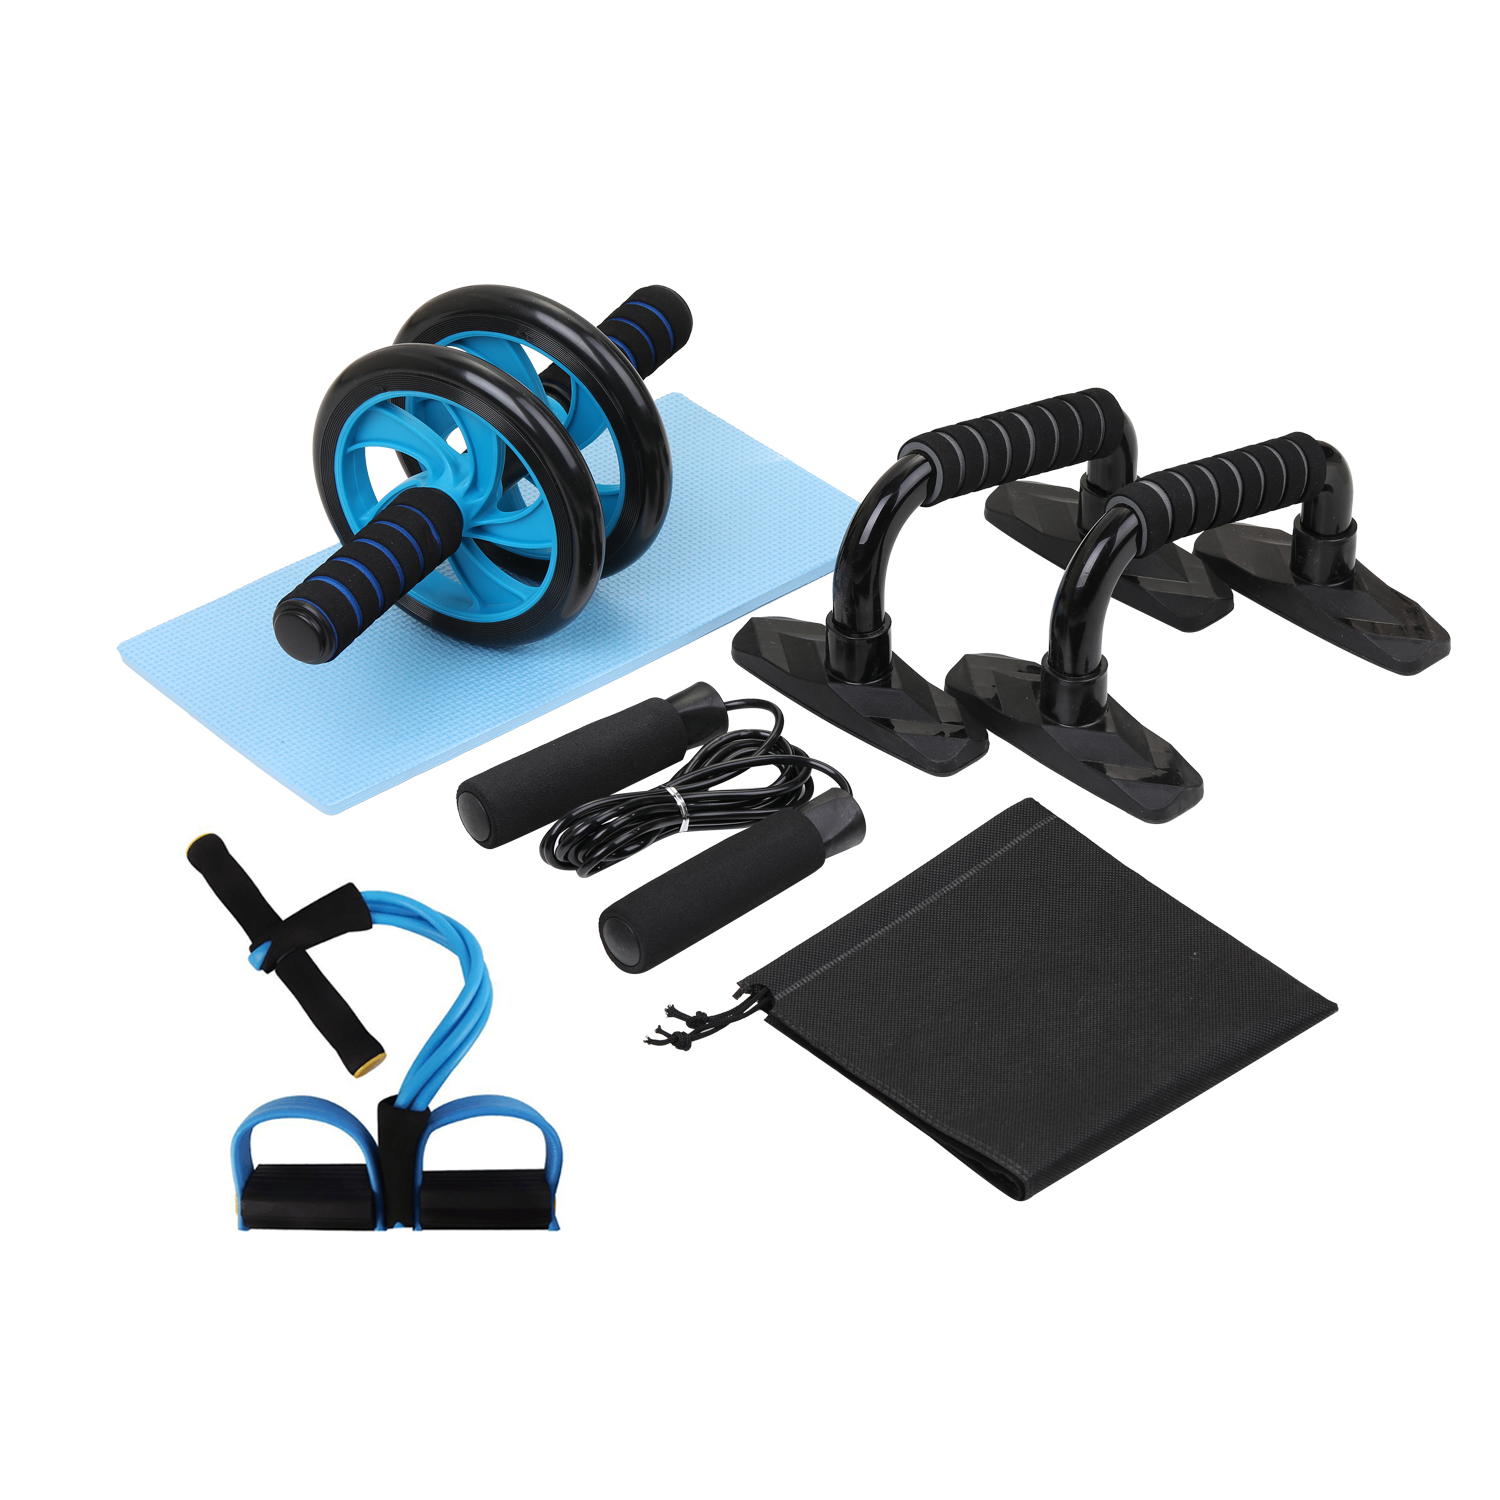 5 In 1 AB Wheel Roller Kit Abdominal Press Wheel Pro With Push-UP Bar Jump Rope And Knee Pad Equipment  Exercise Muscle Strength